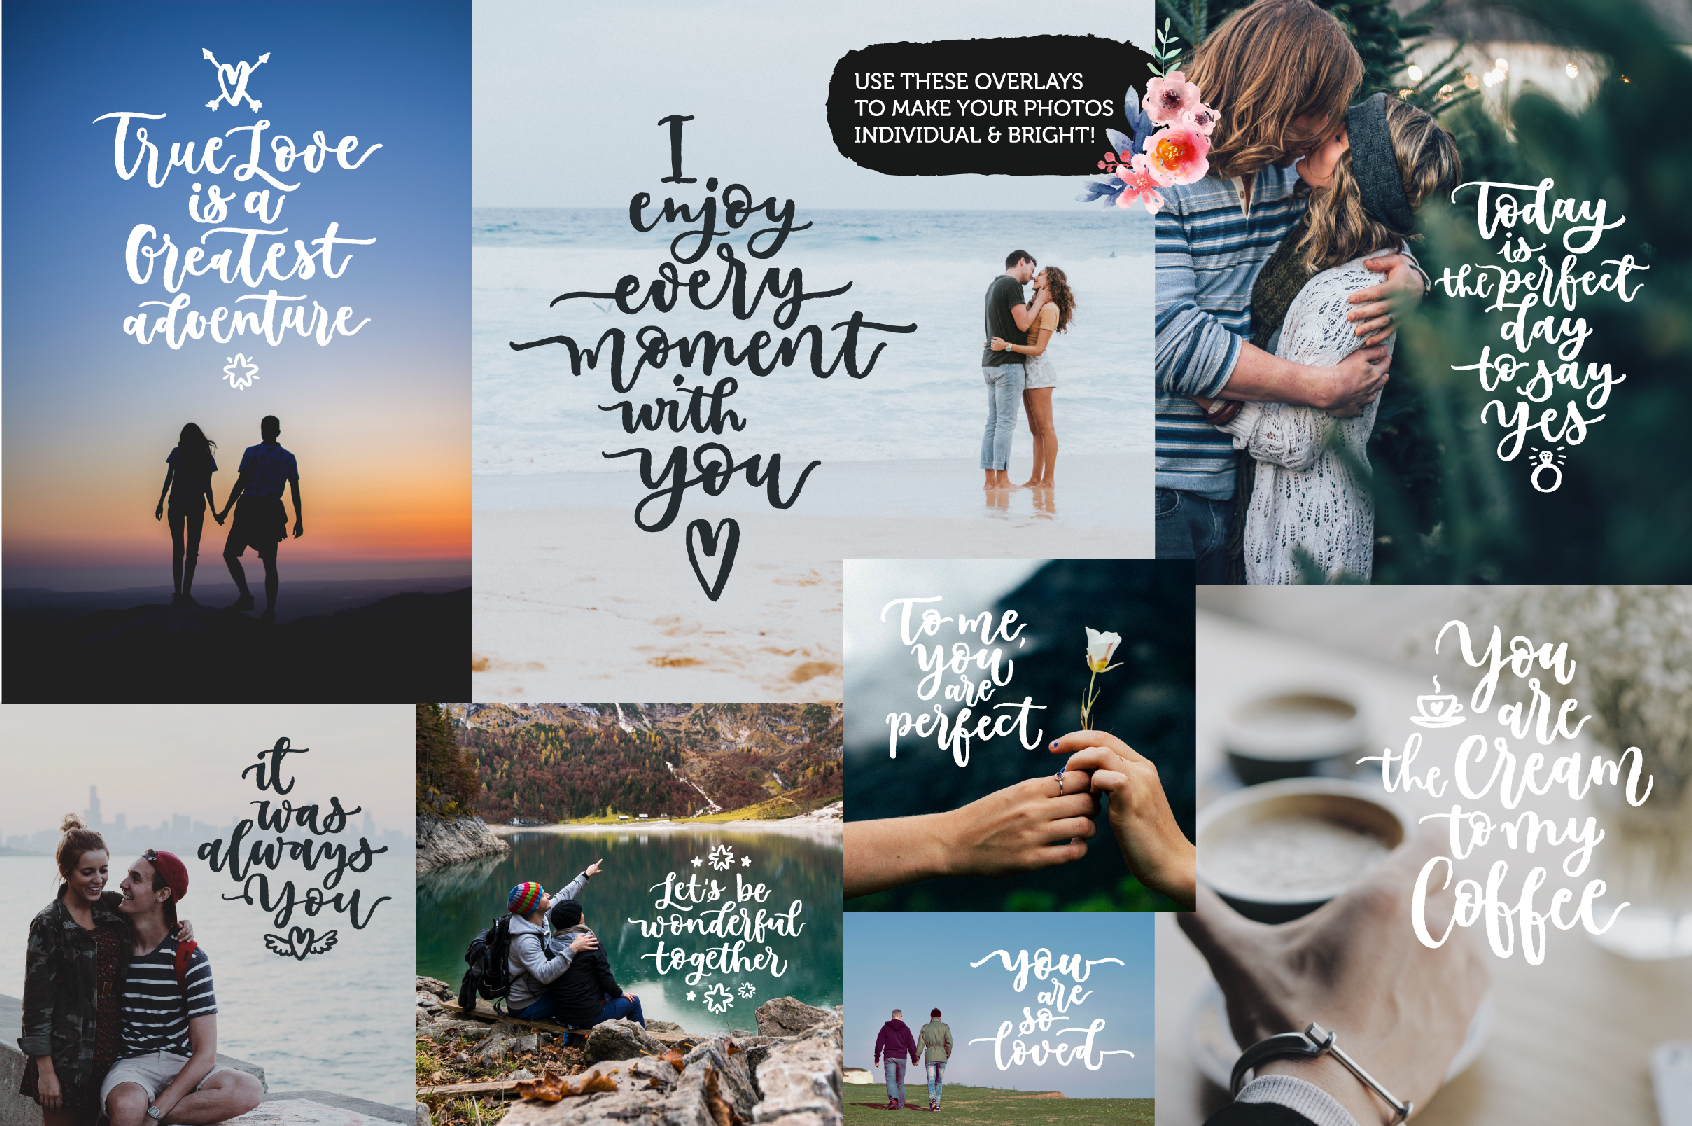 Romantic Overlays, Greetings example image 7